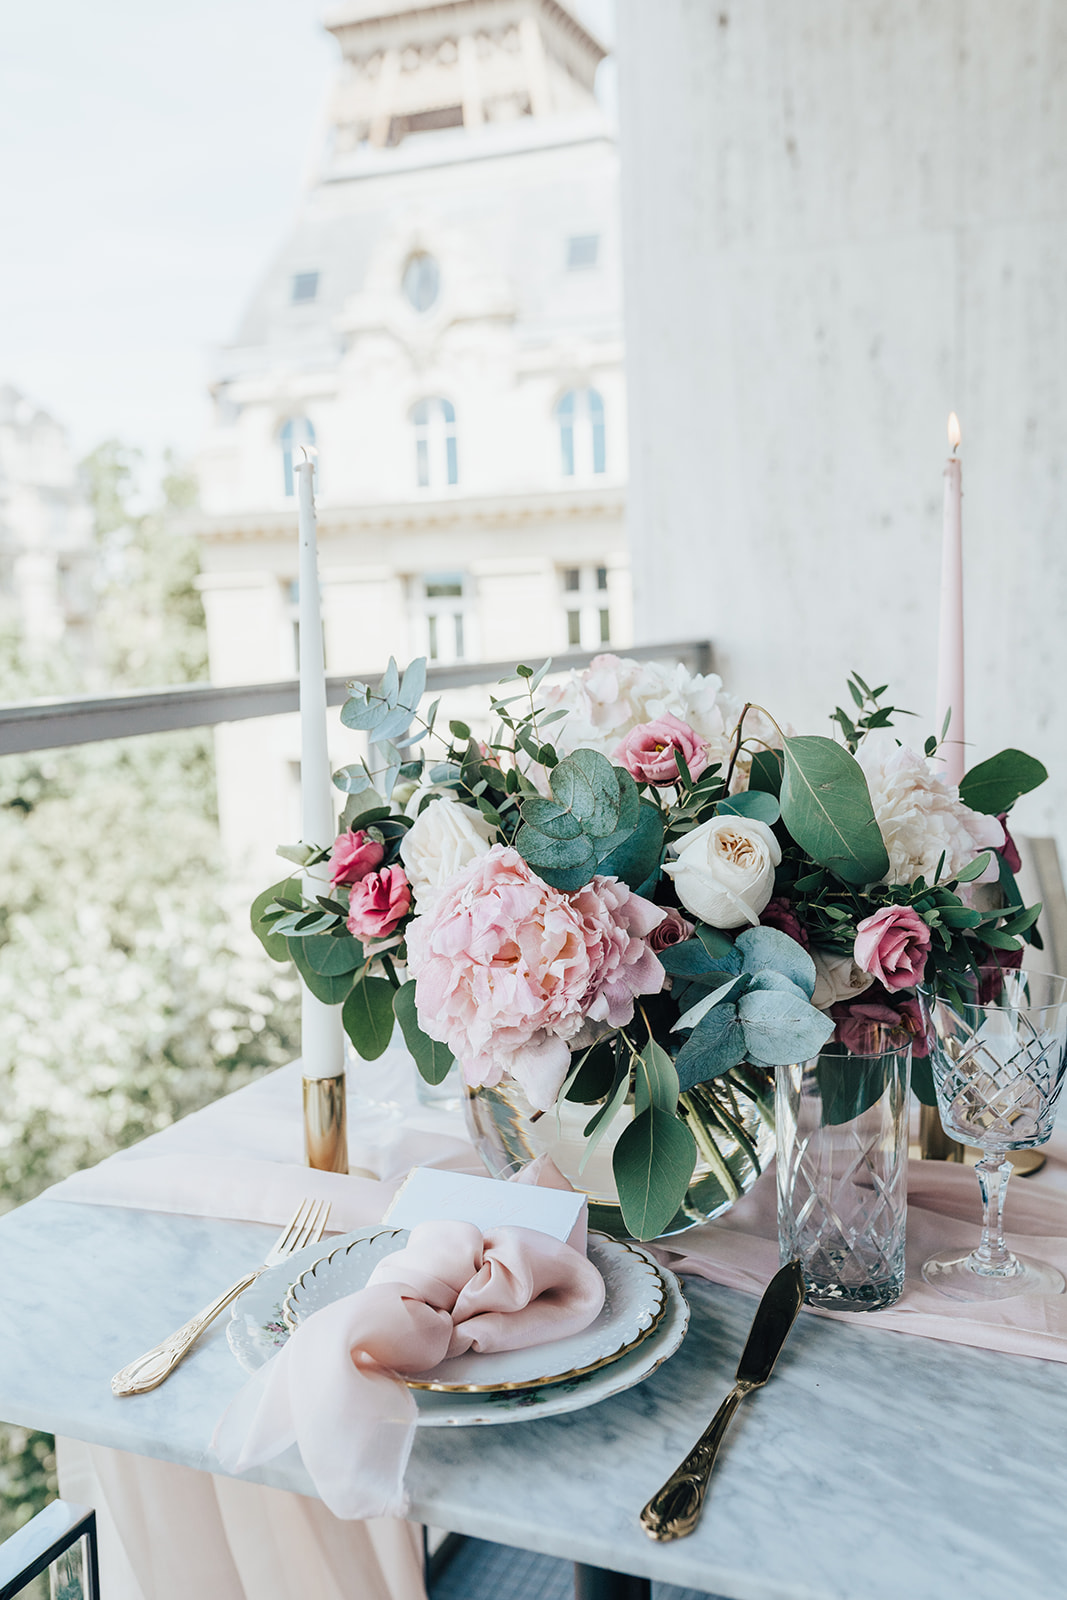 Rebecca_Carpenter_Photography_Paris-464.